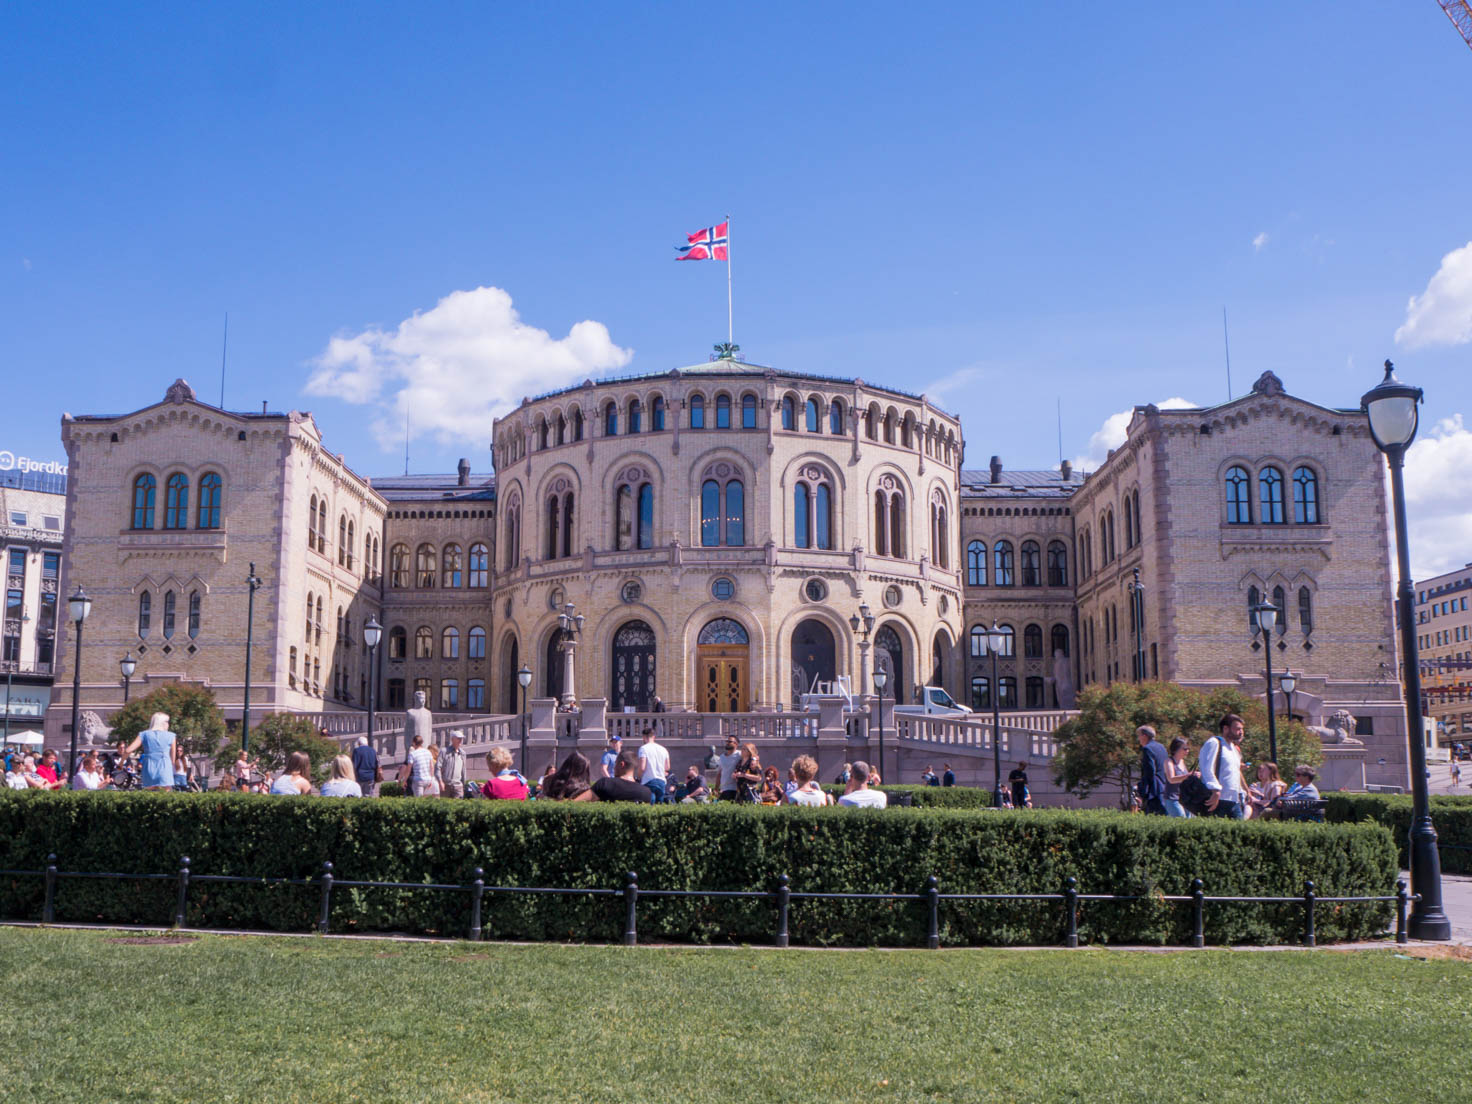 Parliament building in Oslo, Norway